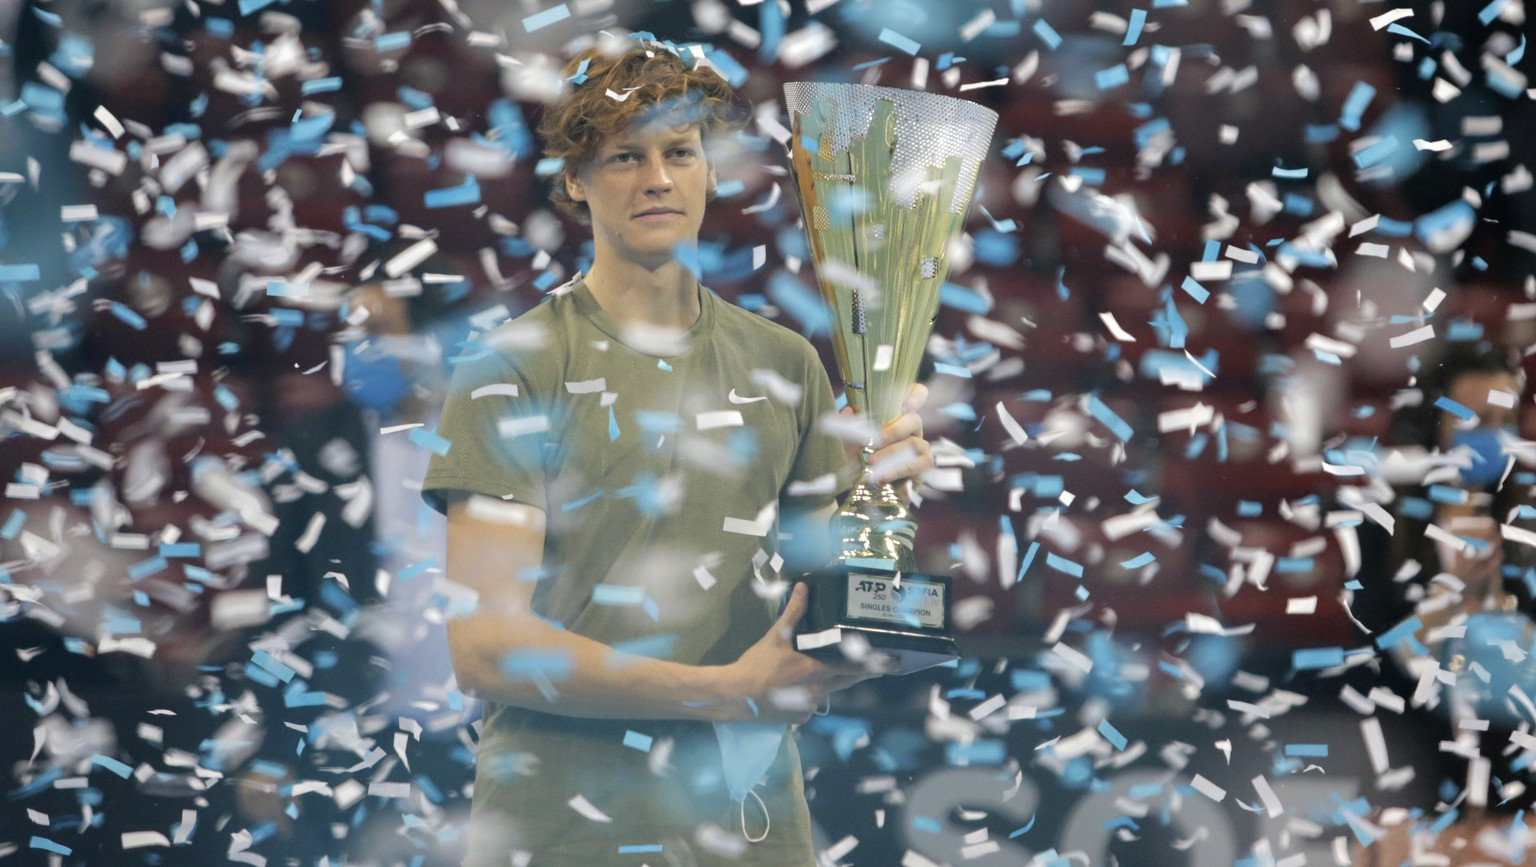 Italy's Jannik Sinner holds the trophy after winning the final match of the 2020 Sofia Open ATP 250 tennis tournament against Canada's Vasek Pospisil, in Sofia, Bulgaria, Saturday, Nov. 14, 2020. (AP Photo)